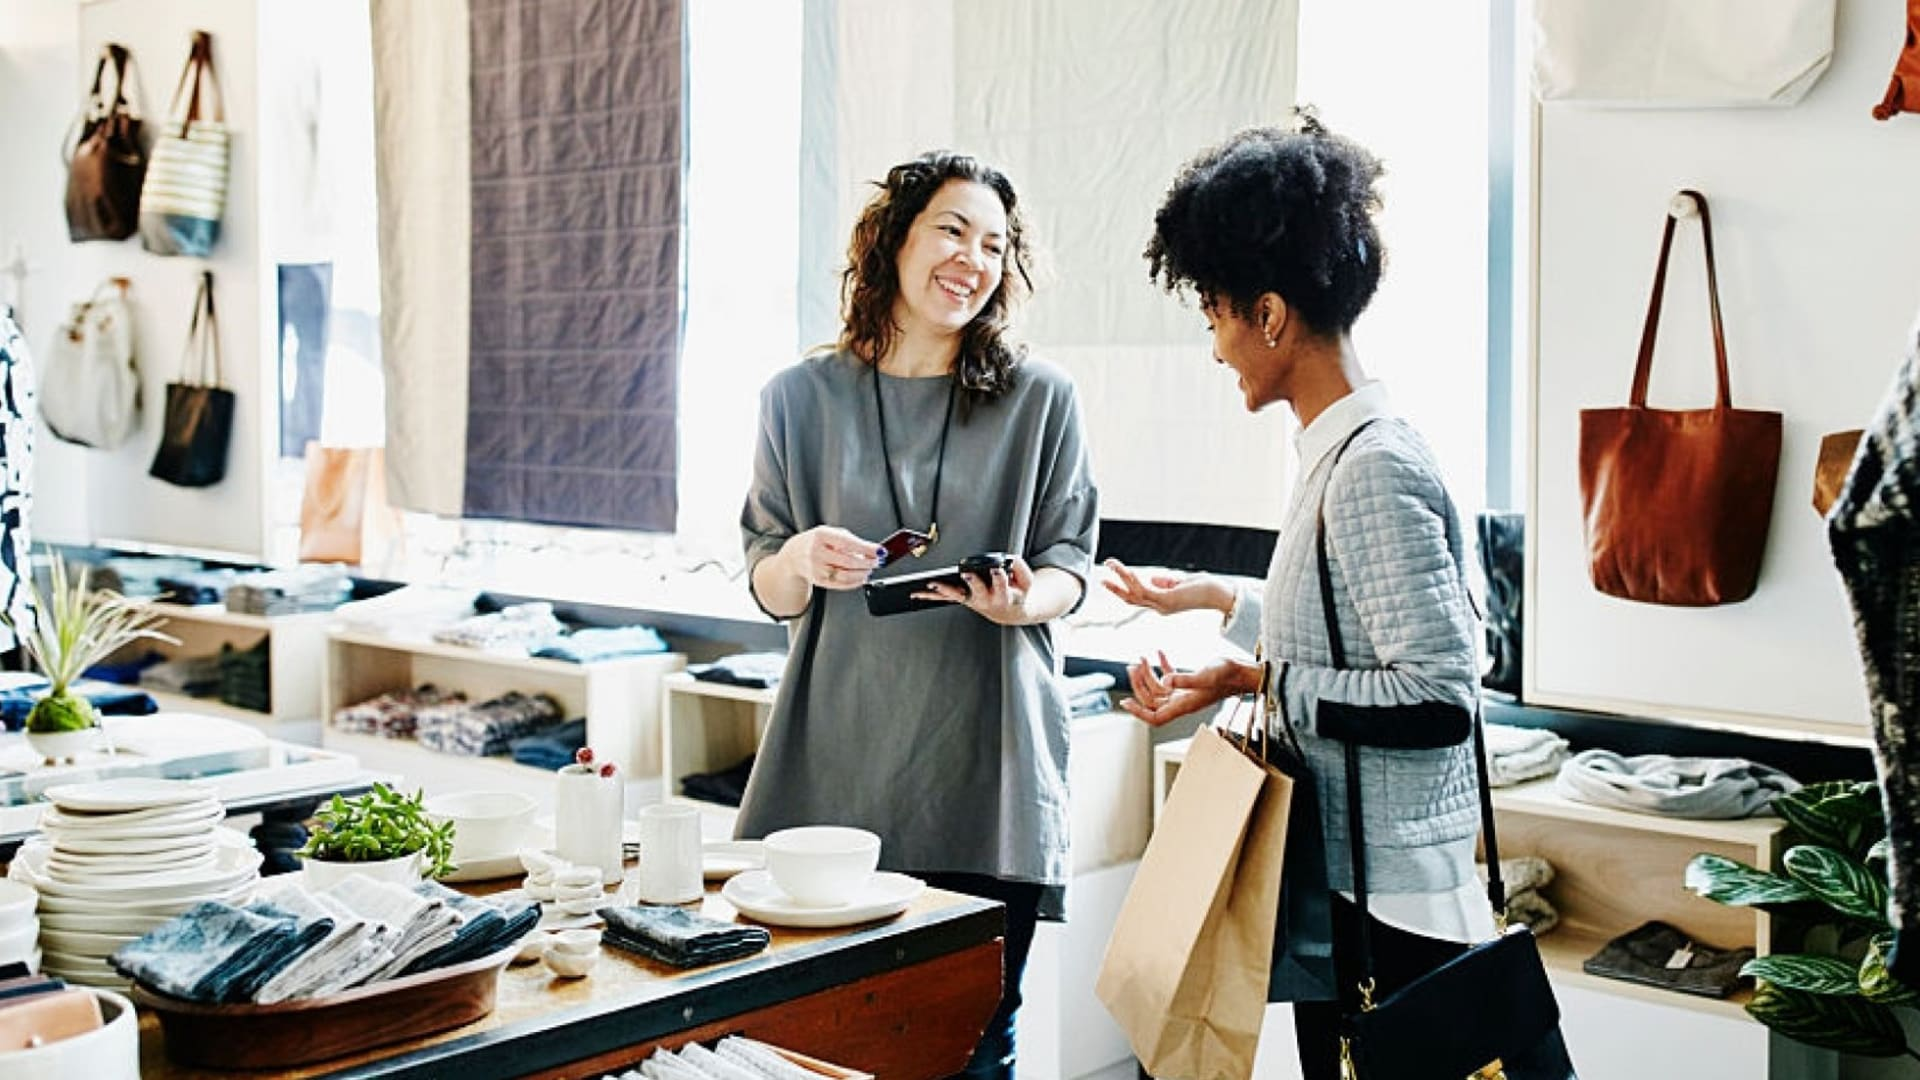 4 Customer Engagement Trends That Will Make Your Customers Love You